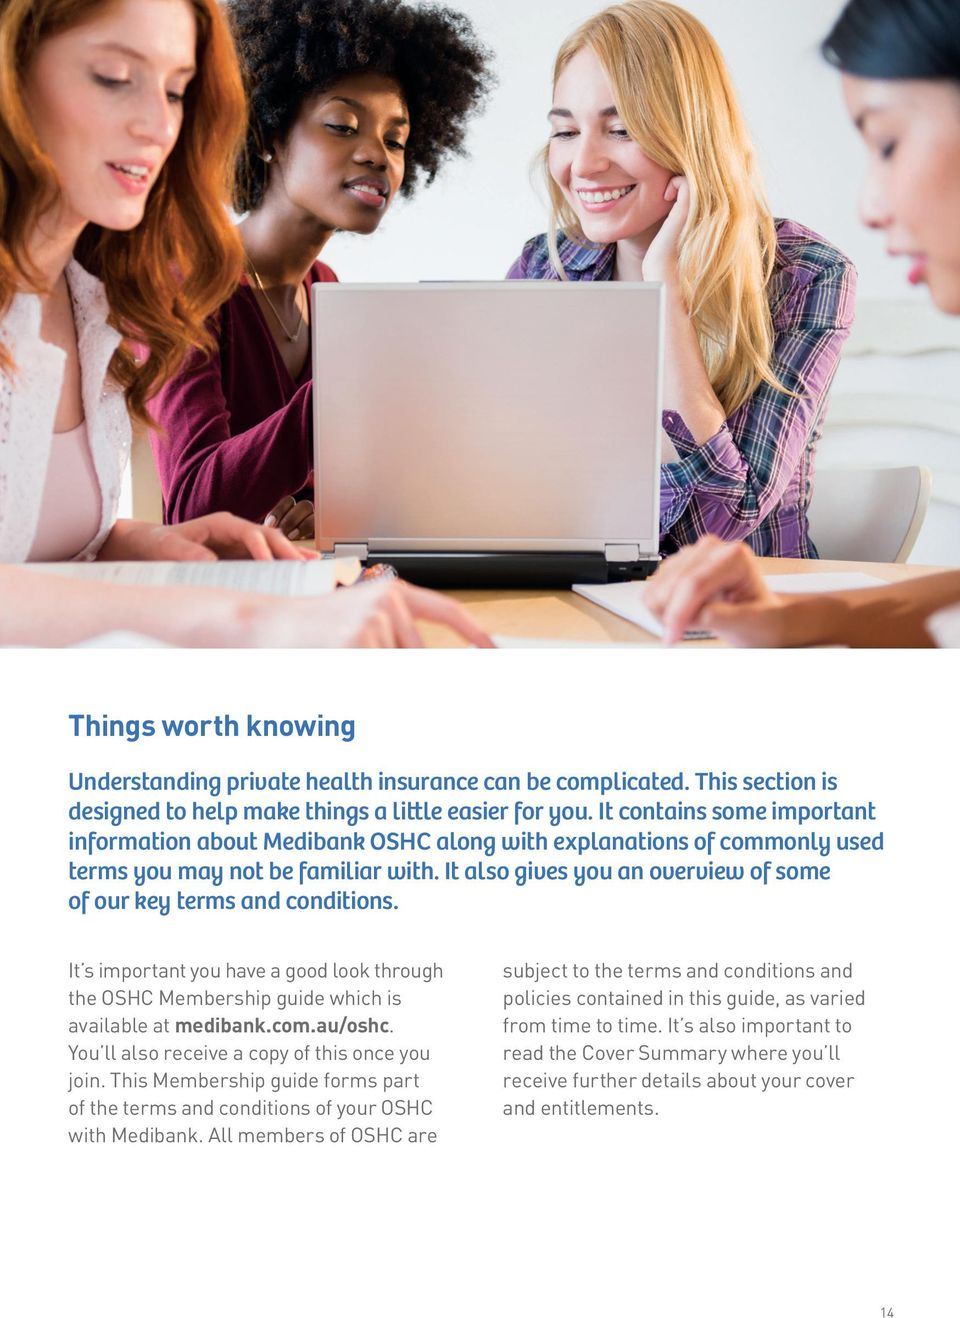 It also gives you an overview of some of our key terms and conditions. It s important you have a good look through the OSHC Membership guide which is available at medibank.com.au/oshc.